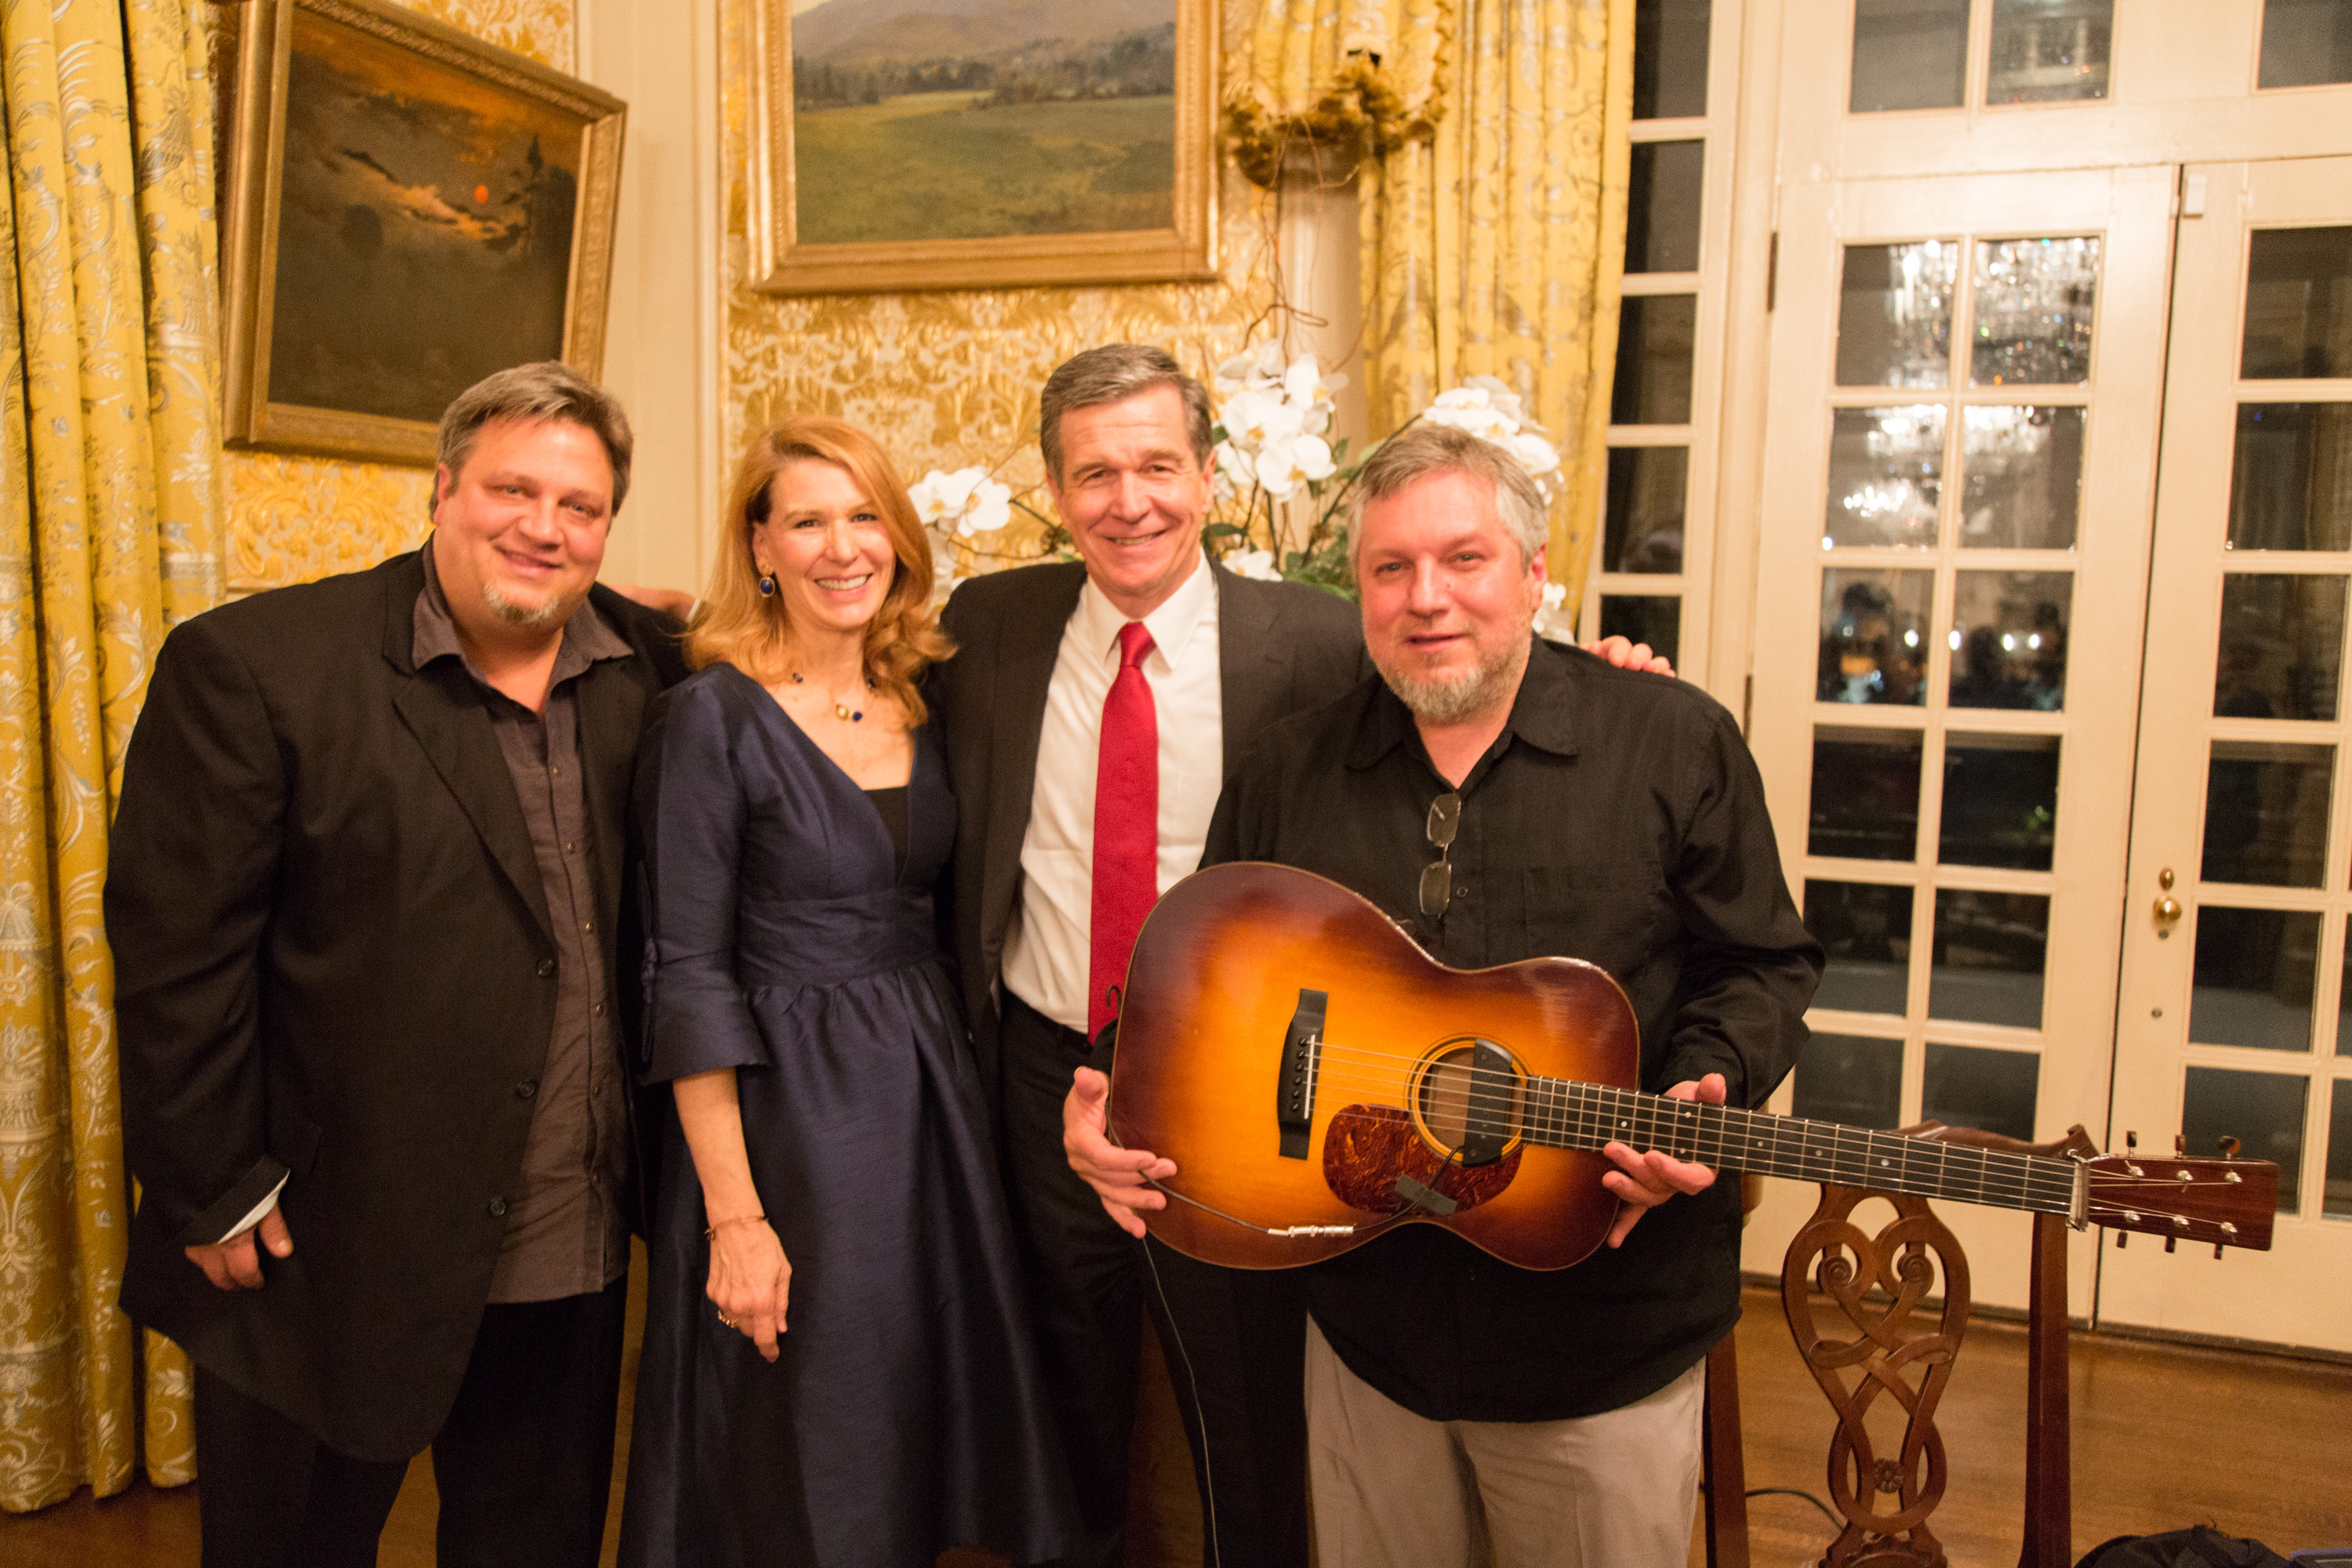 Music at the Mansion - Harris Brothers with Governor Roy Cooper and First Lady Kristin Cooper